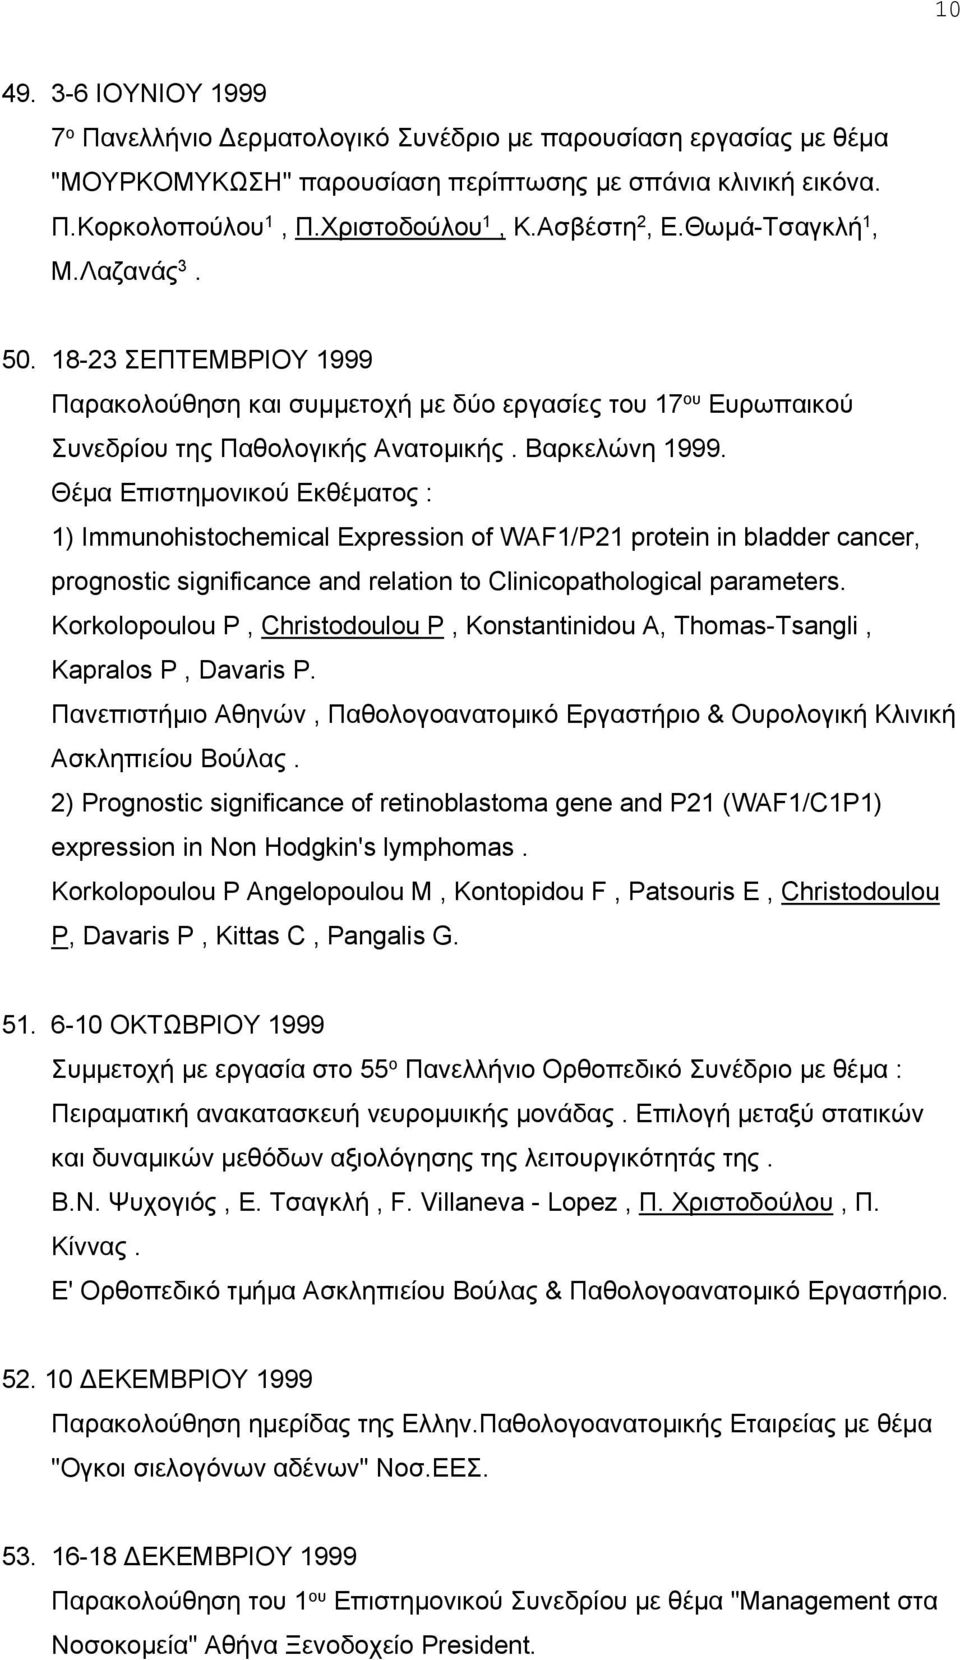 Θέμα Επιστημονικού Εκθέματος : 1) Immunohistochemical Expression of WAF1/P21 protein in bladder cancer, prognostic significance and relation to Clinicopathological parameters.